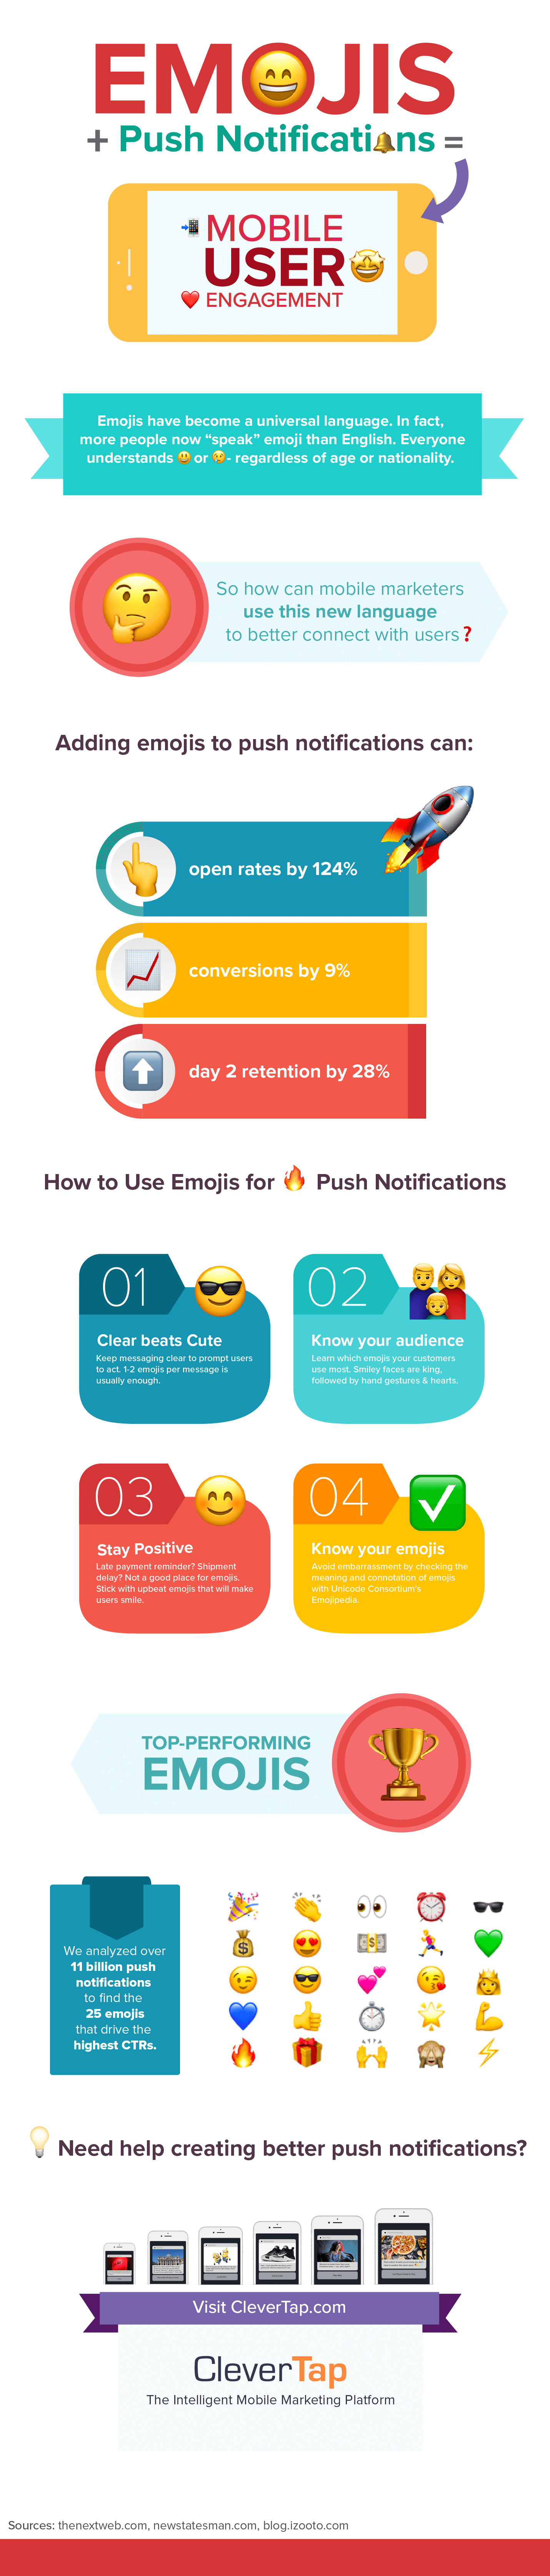 How Emojis Can Push Emotional Connect in Your Push Notification Campaign - Infographic